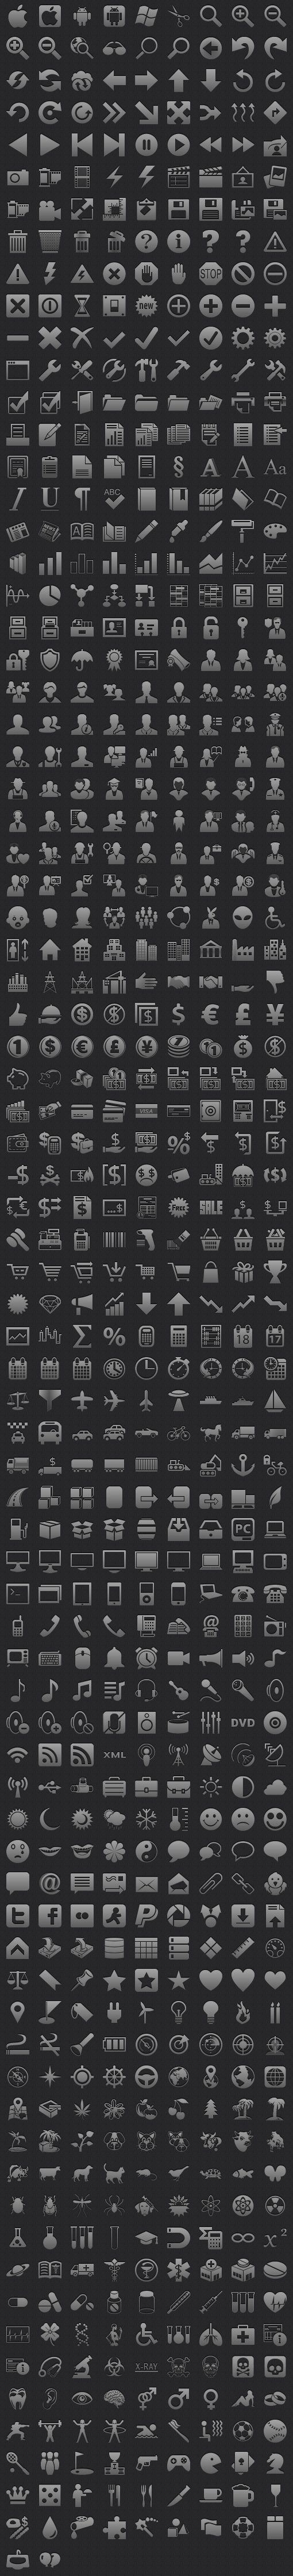 Toolbar Icons for iPhone